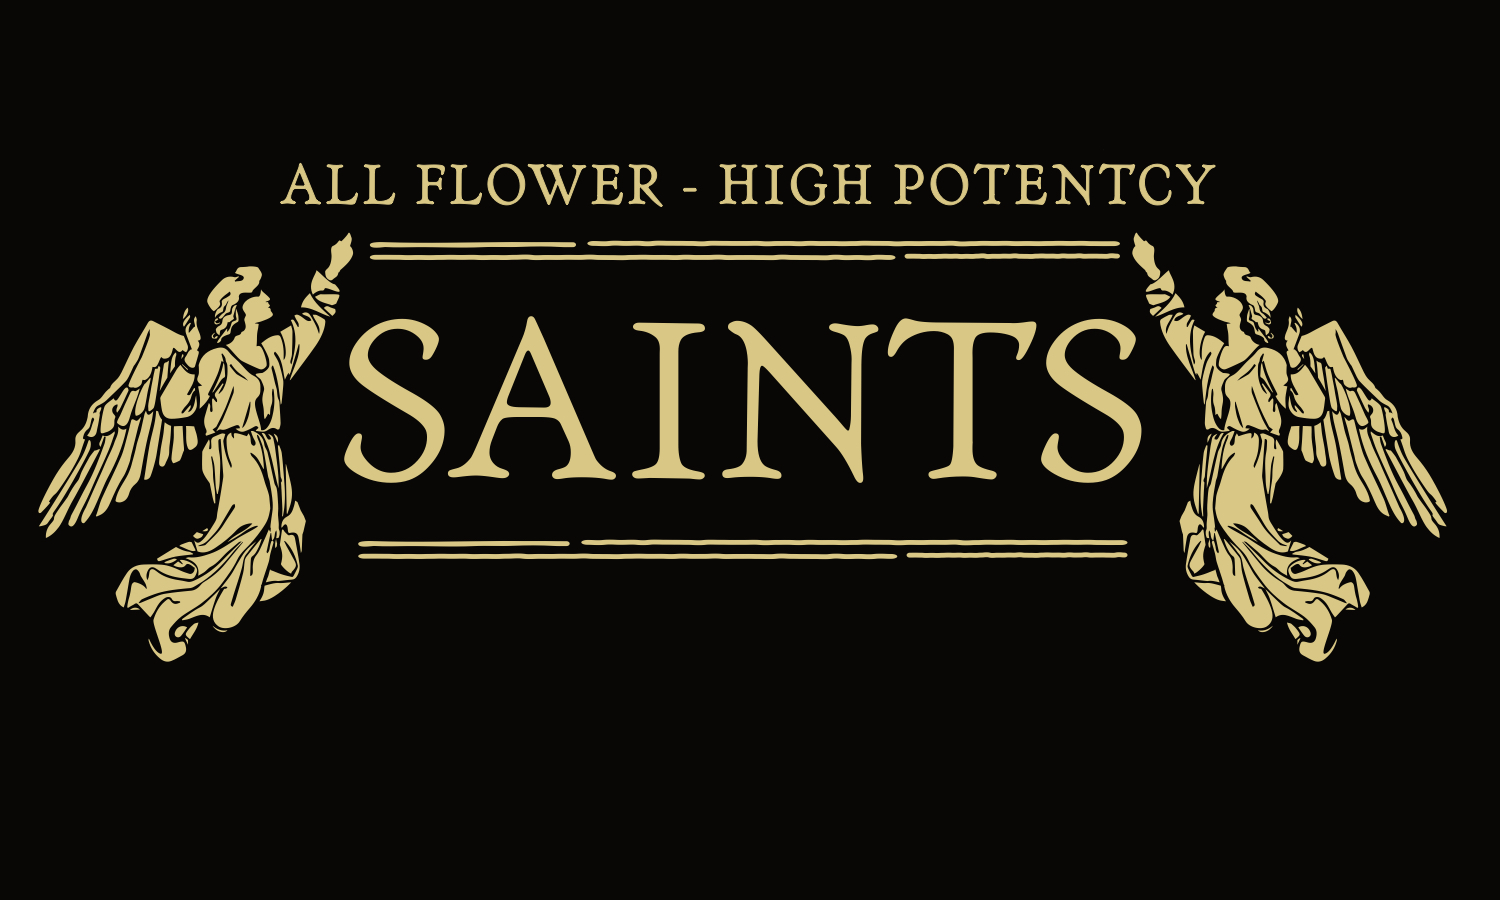 Saints Joints